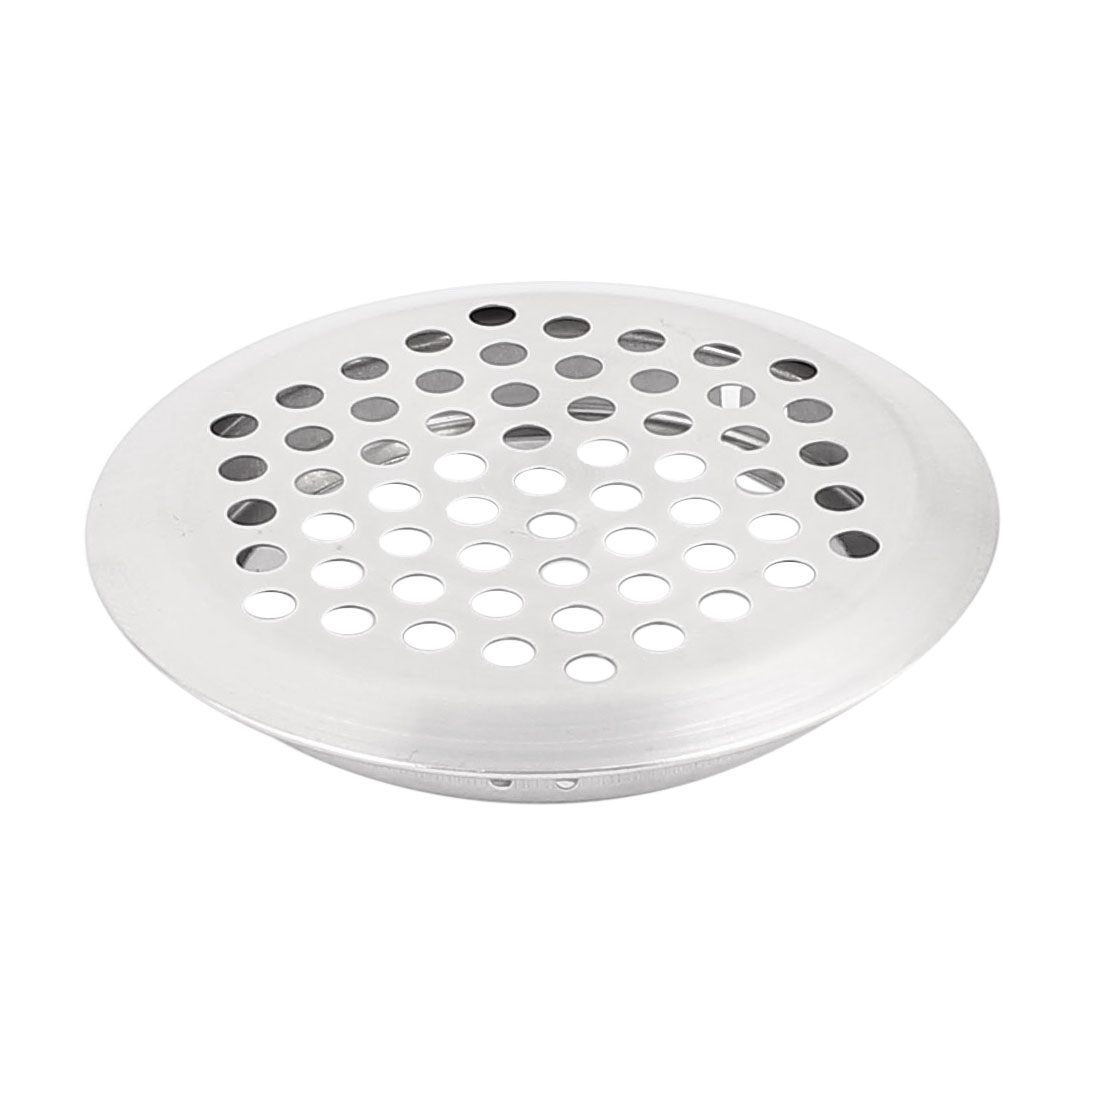 53mm Bottom Dia Round Panel Shoes Cupboard Cabinet Air Vent Louver Cover